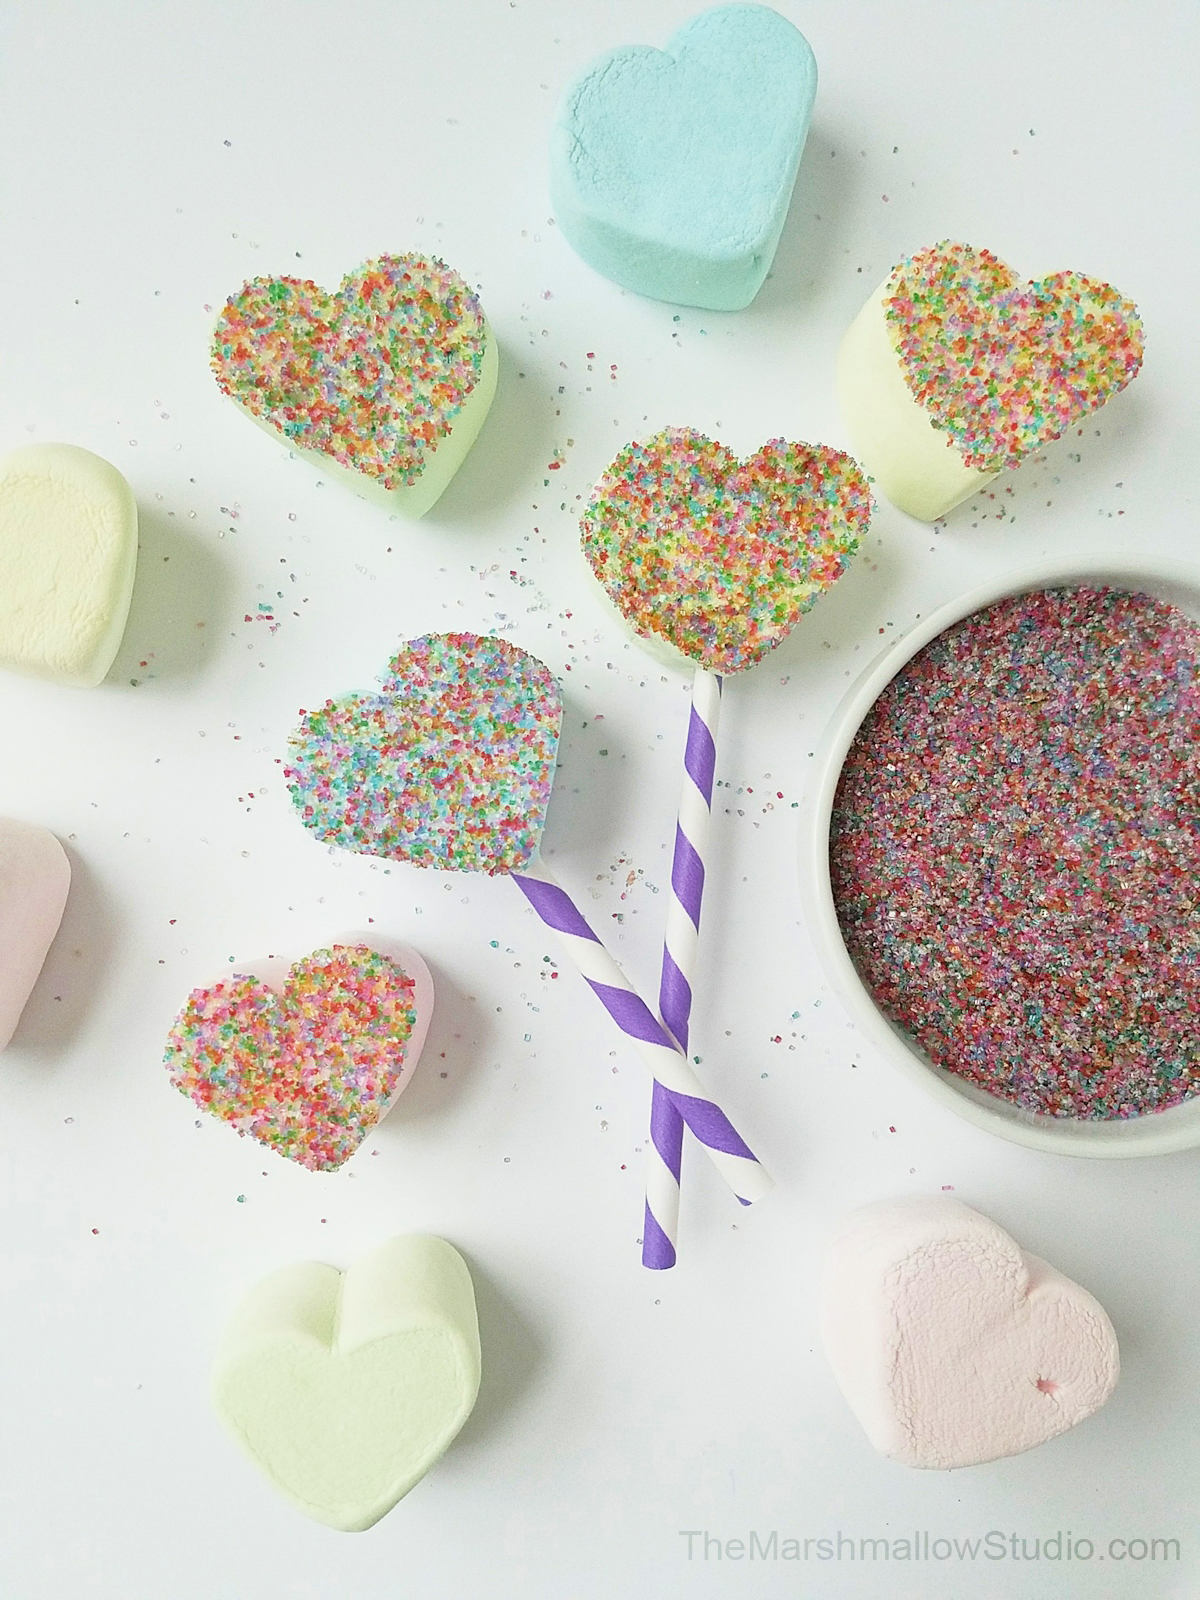 4 fun DIYs with Jumbo HeartMallows Conversation Hearts by The Marshmallow Studio1